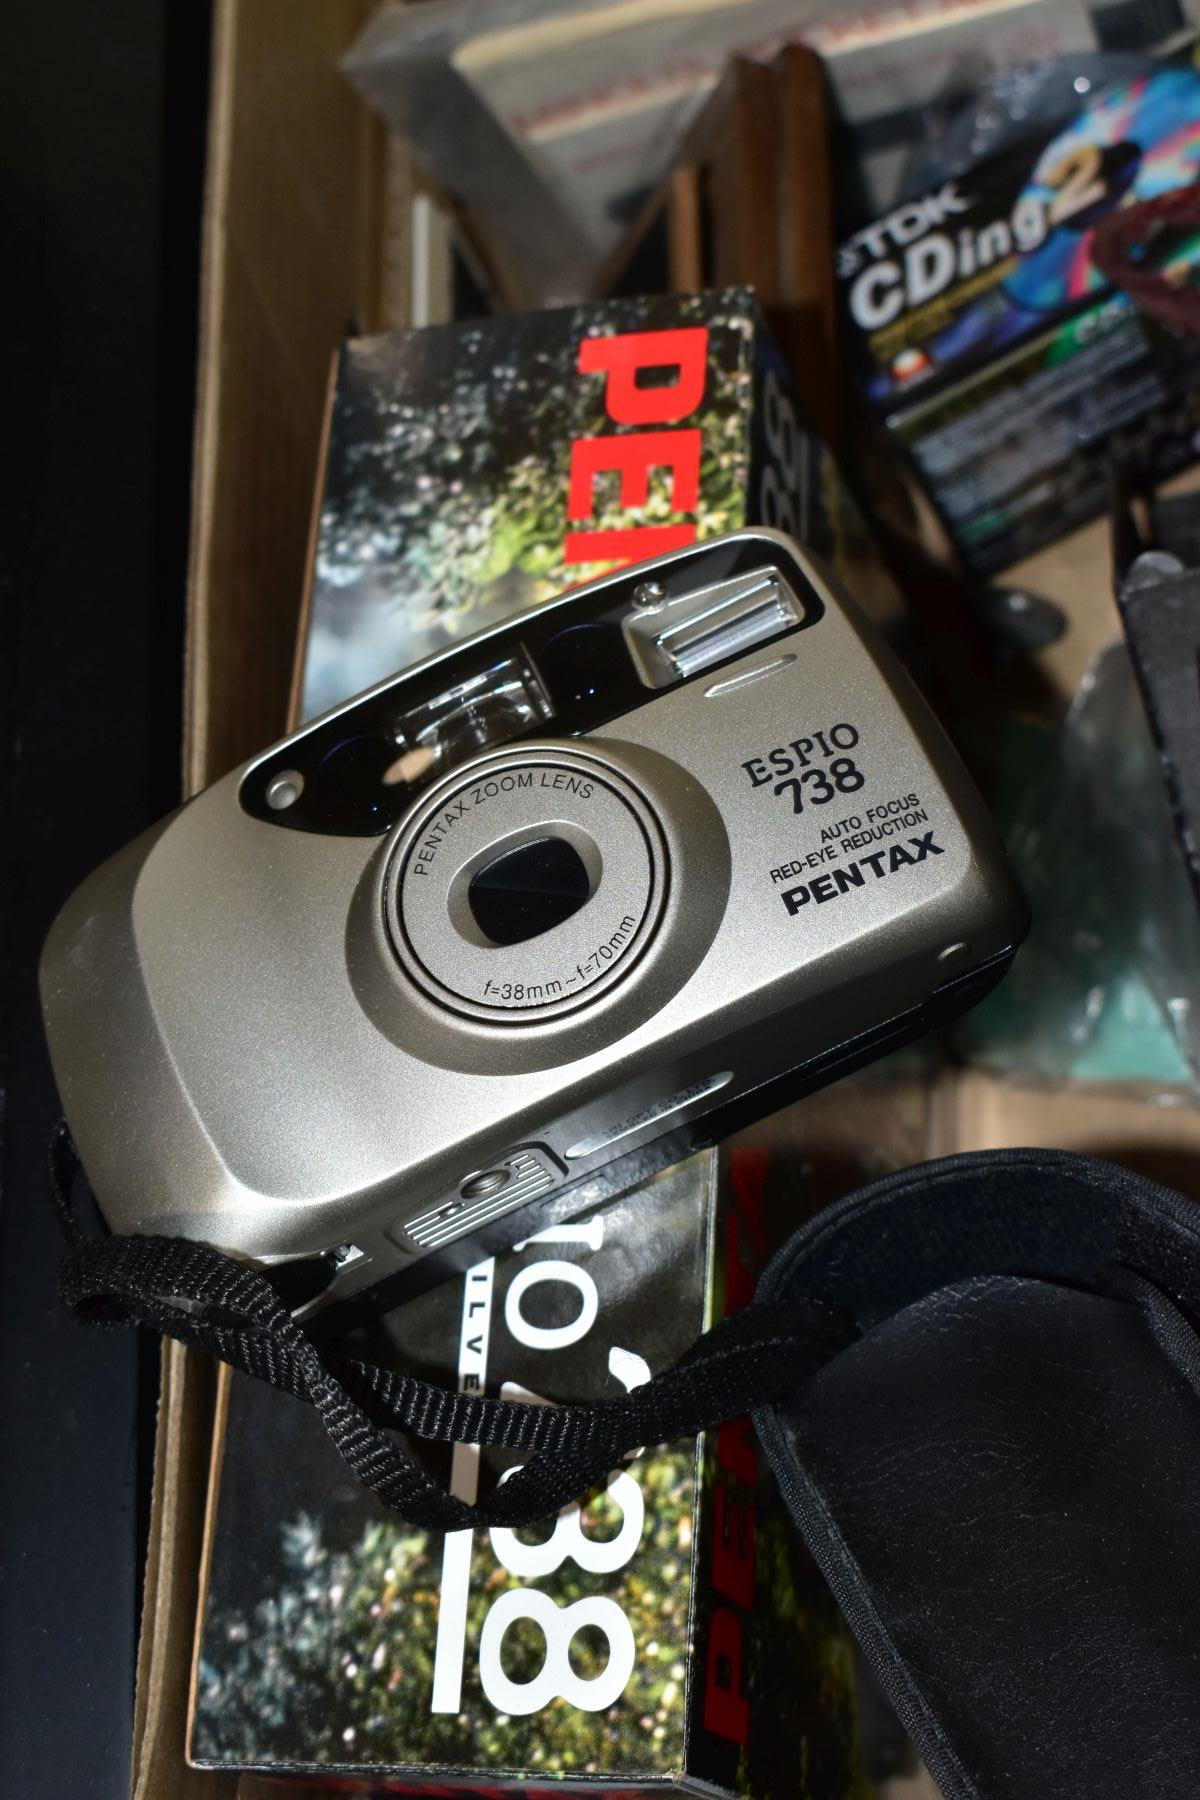 PHOTOGRAPHIC EQUIPMENT, etc, to include a Minolta Auto Pak 270 110 film camera with leather case and - Image 2 of 6